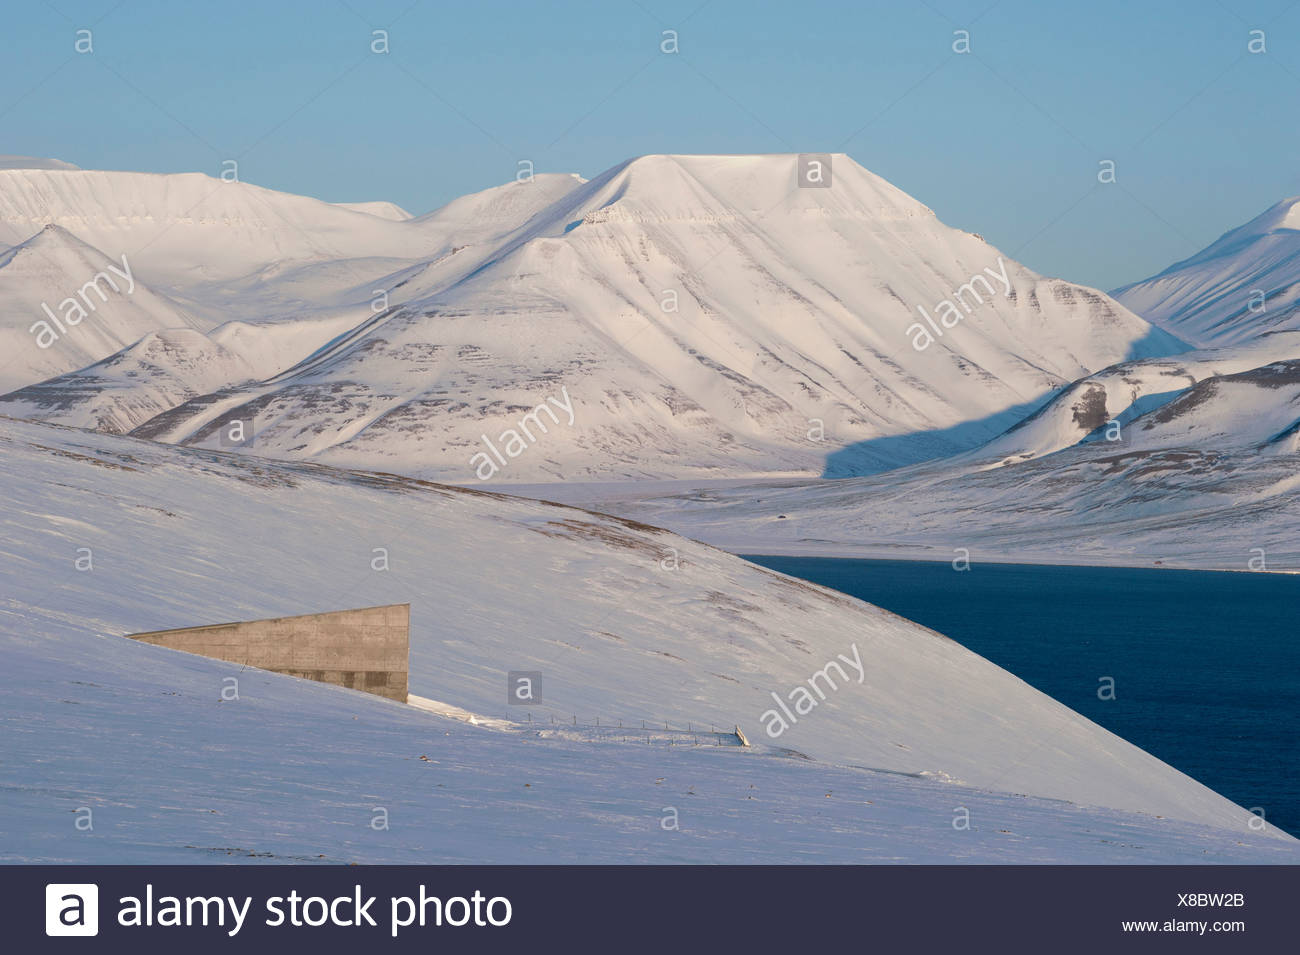 The entrance to the 'Svalbard Global Seed Vault', Adventfjorden, Advent Bay at back, Longyearbyen, Spitsbergen, Svalbard, Norway - Stock Image